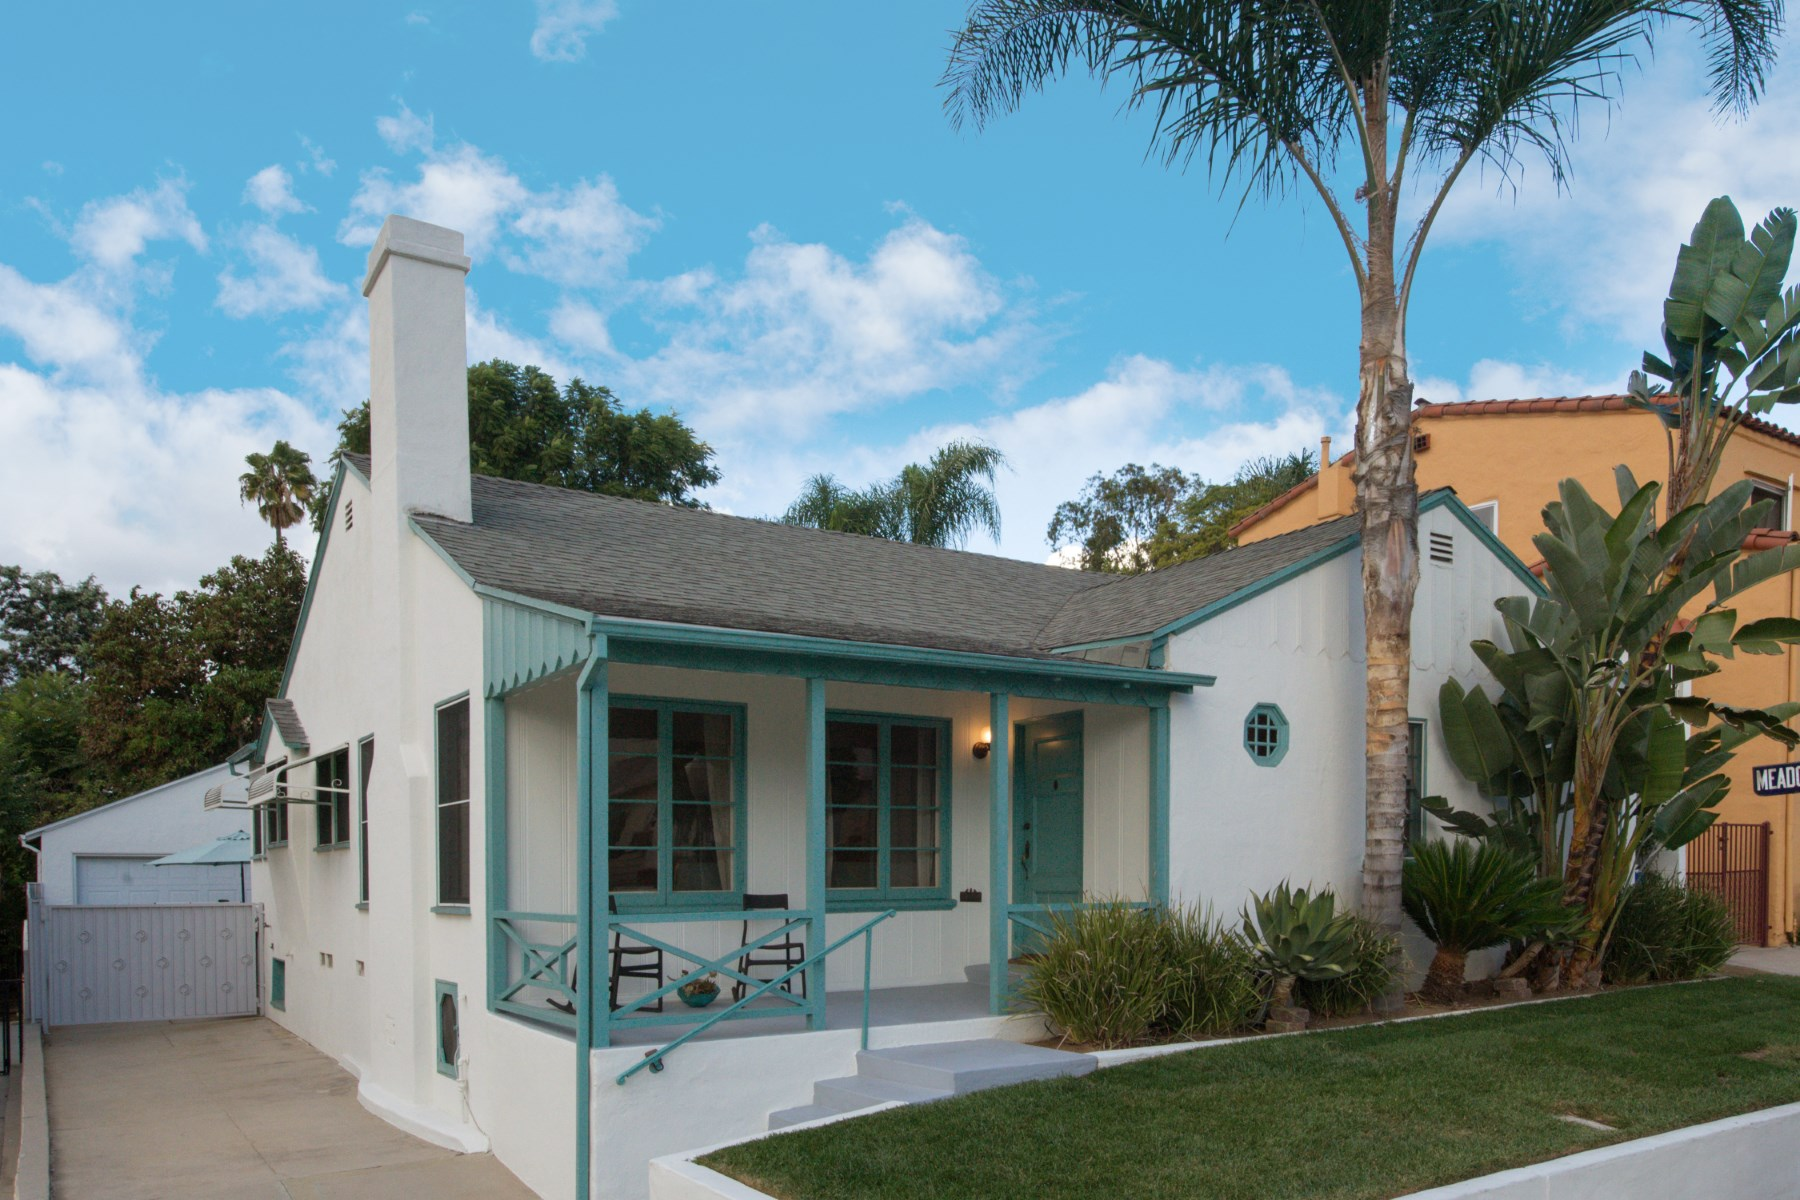 Single Family Home for Sale at 3107 Scotland Street Silver Lake, Los Angeles, California 90039 United States